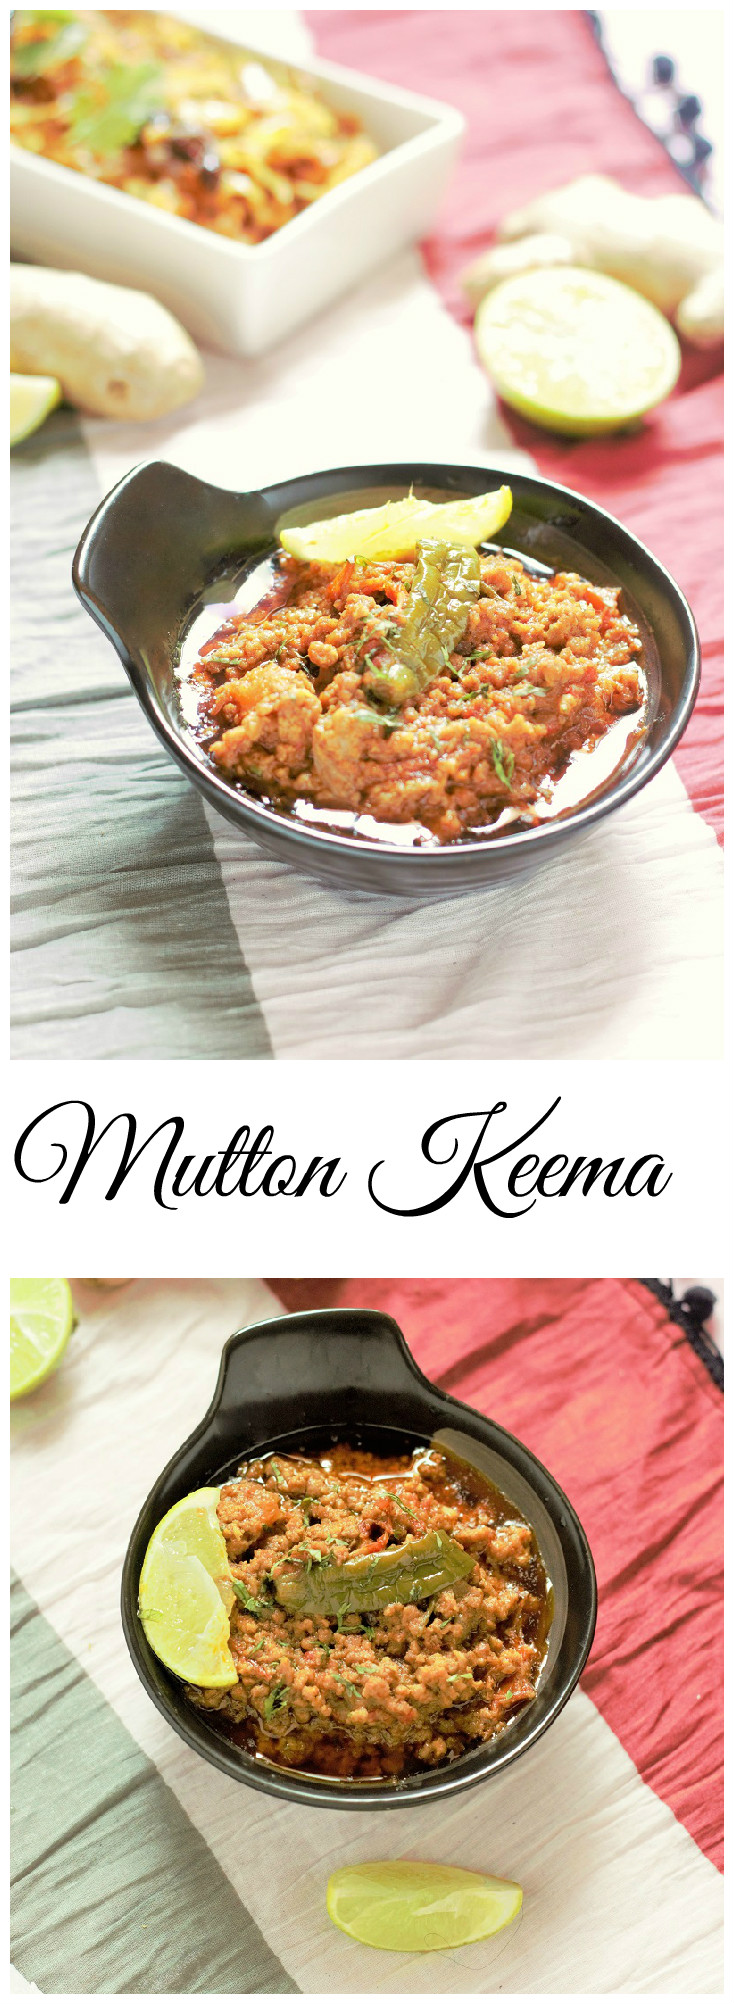 mutton keema recipe